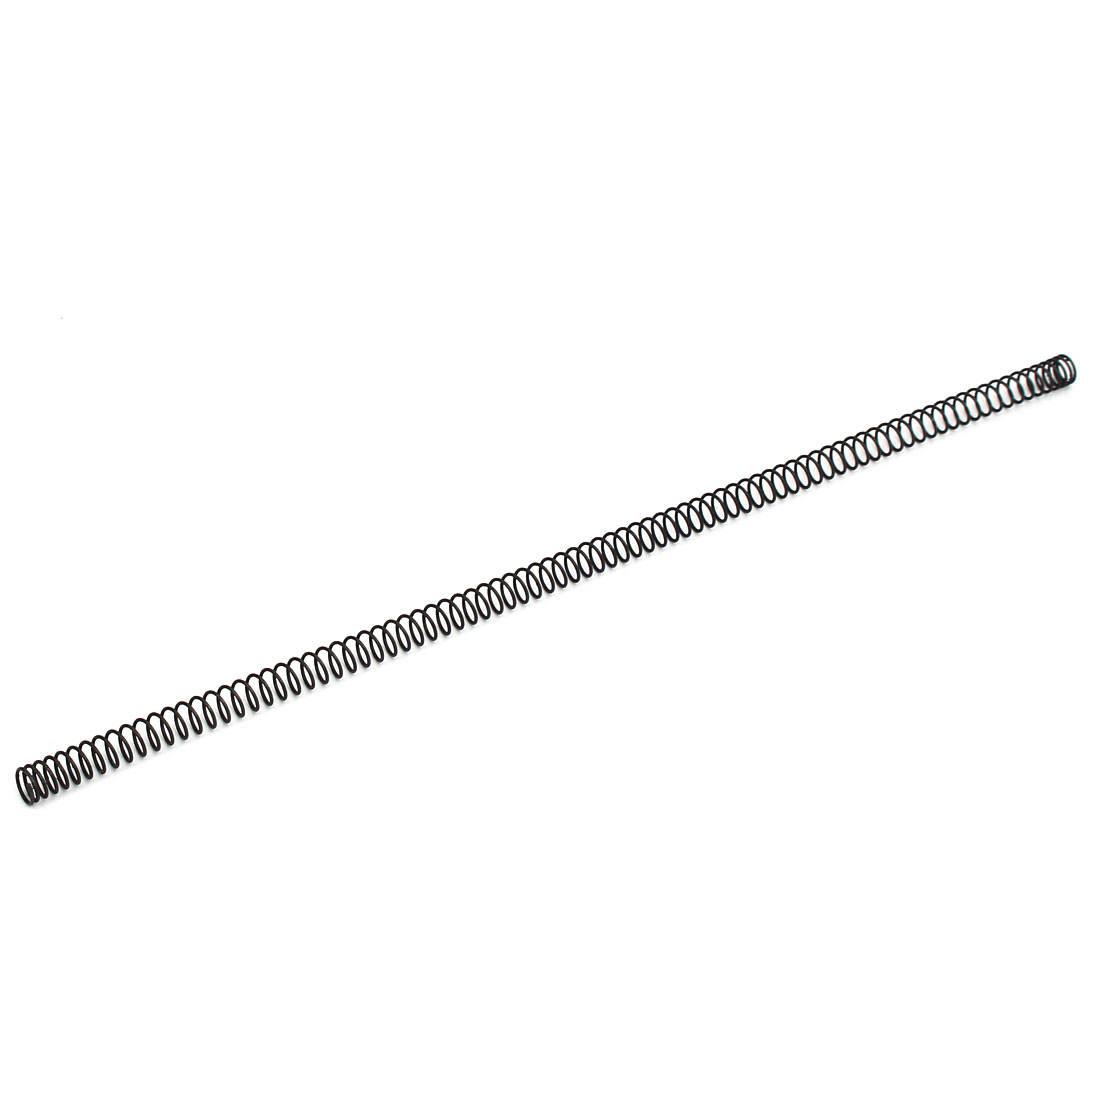 0.8mmx8mmx305mm Manganese Steel Compression Spring Black